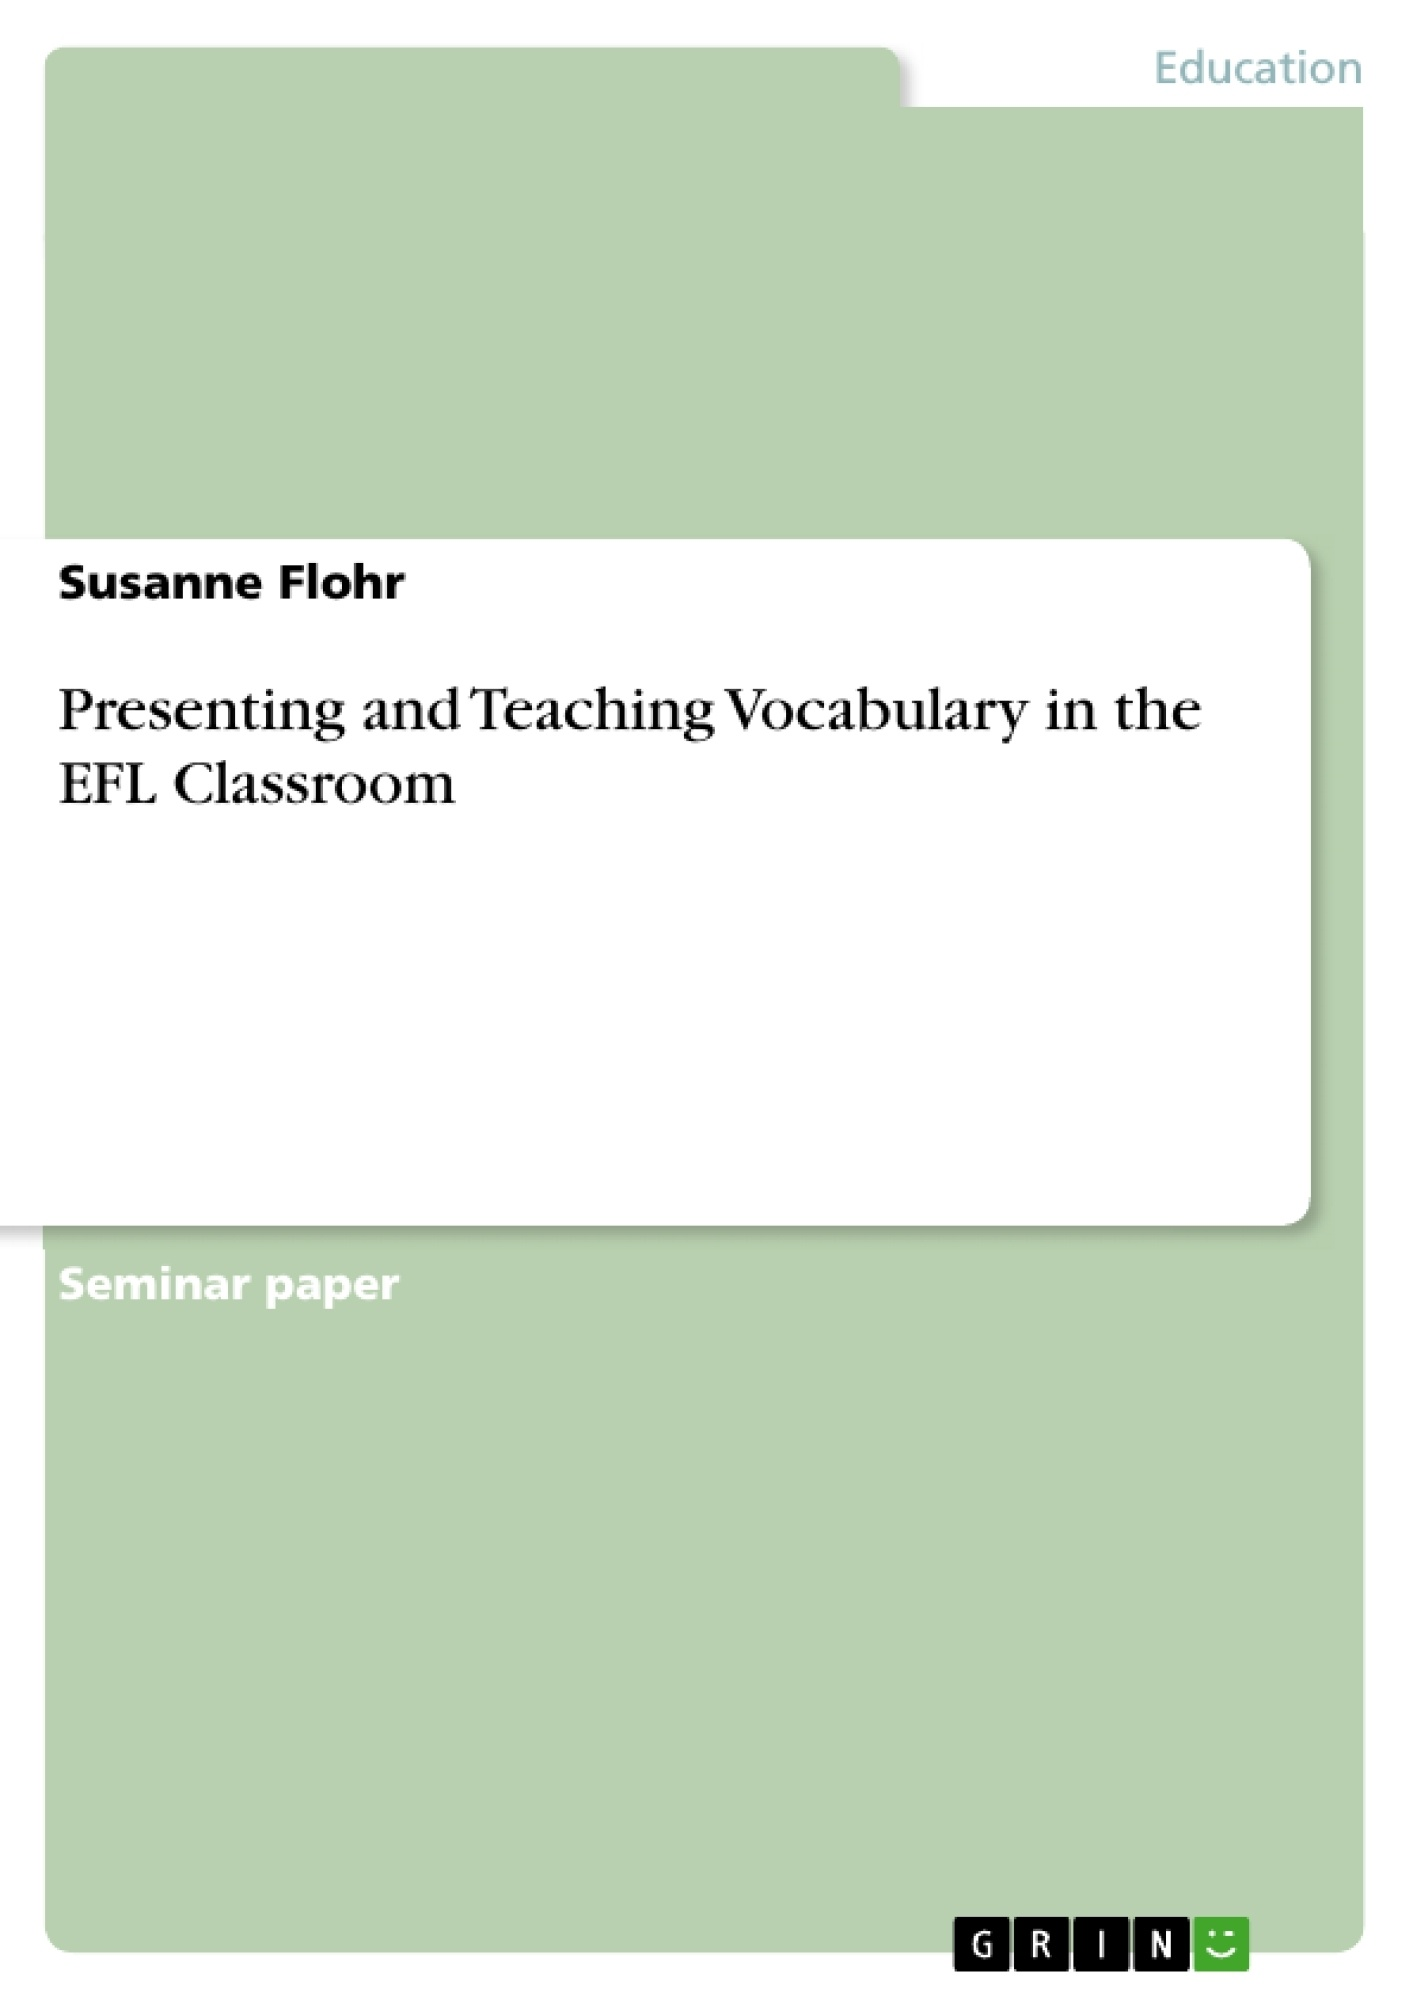 Title: Presenting and Teaching Vocabulary in the EFL Classroom